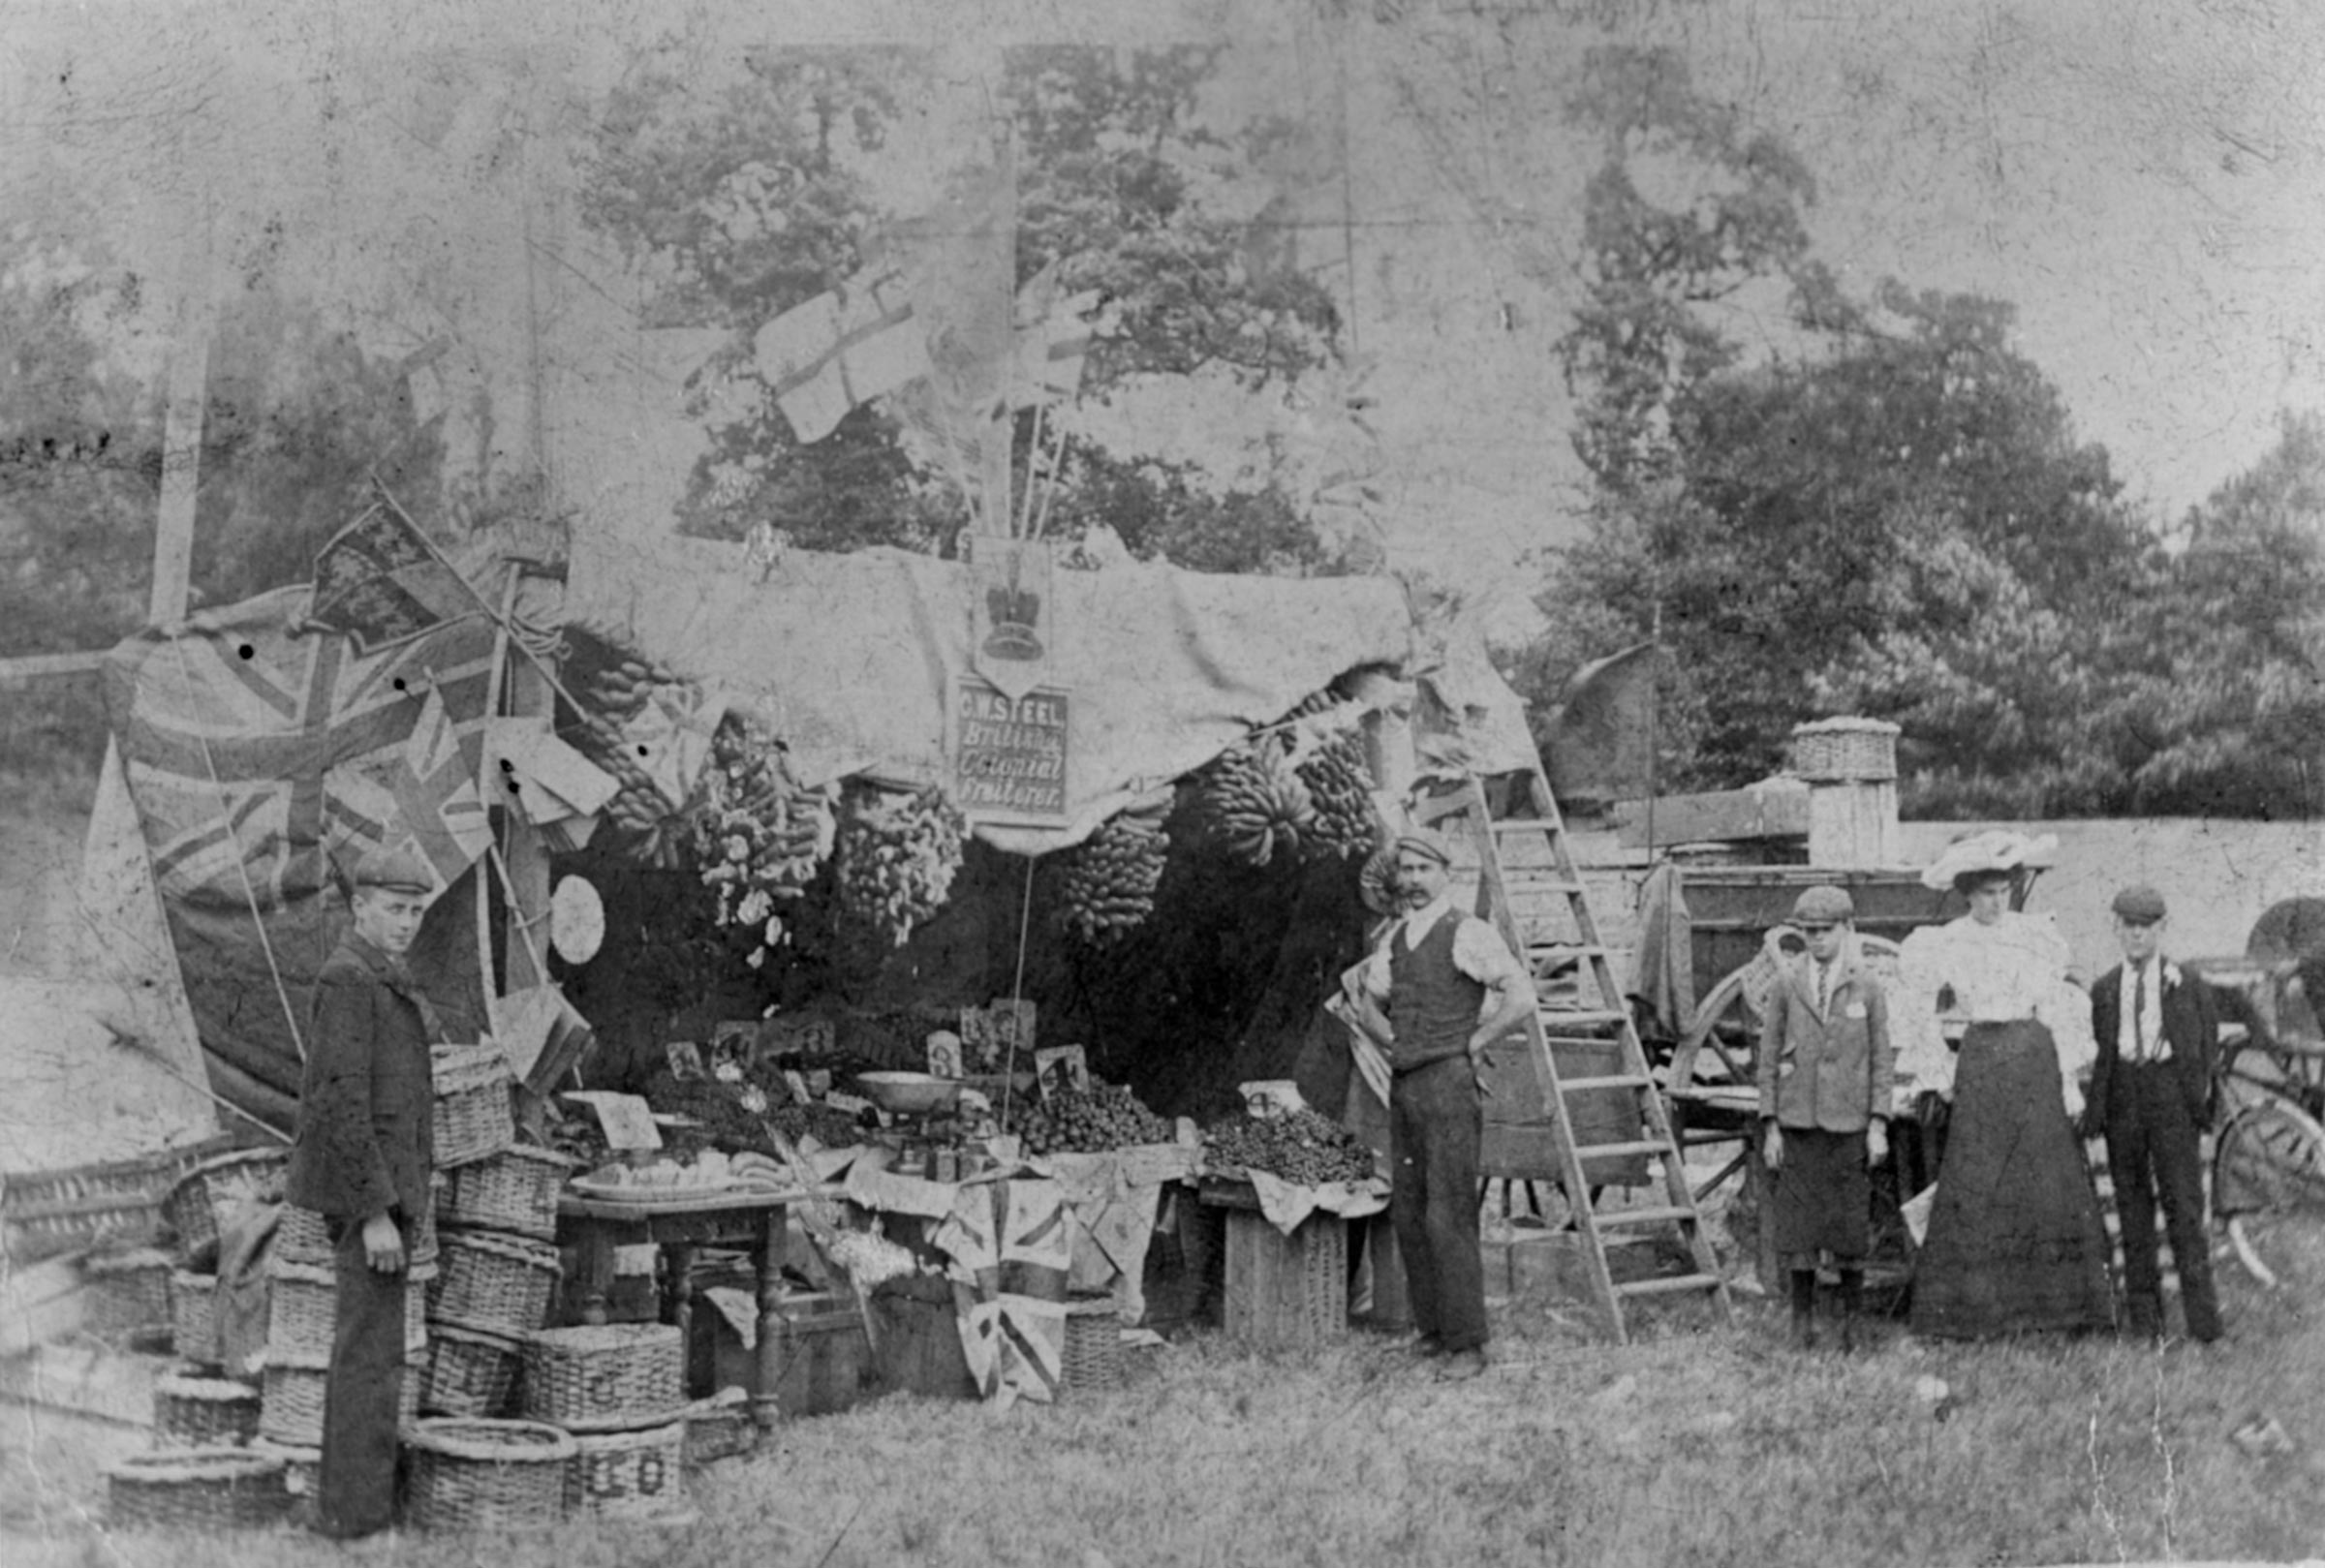 Farmers market in Stroud Green House grounds-1897, Courtesy of Museum of Croydon Collections